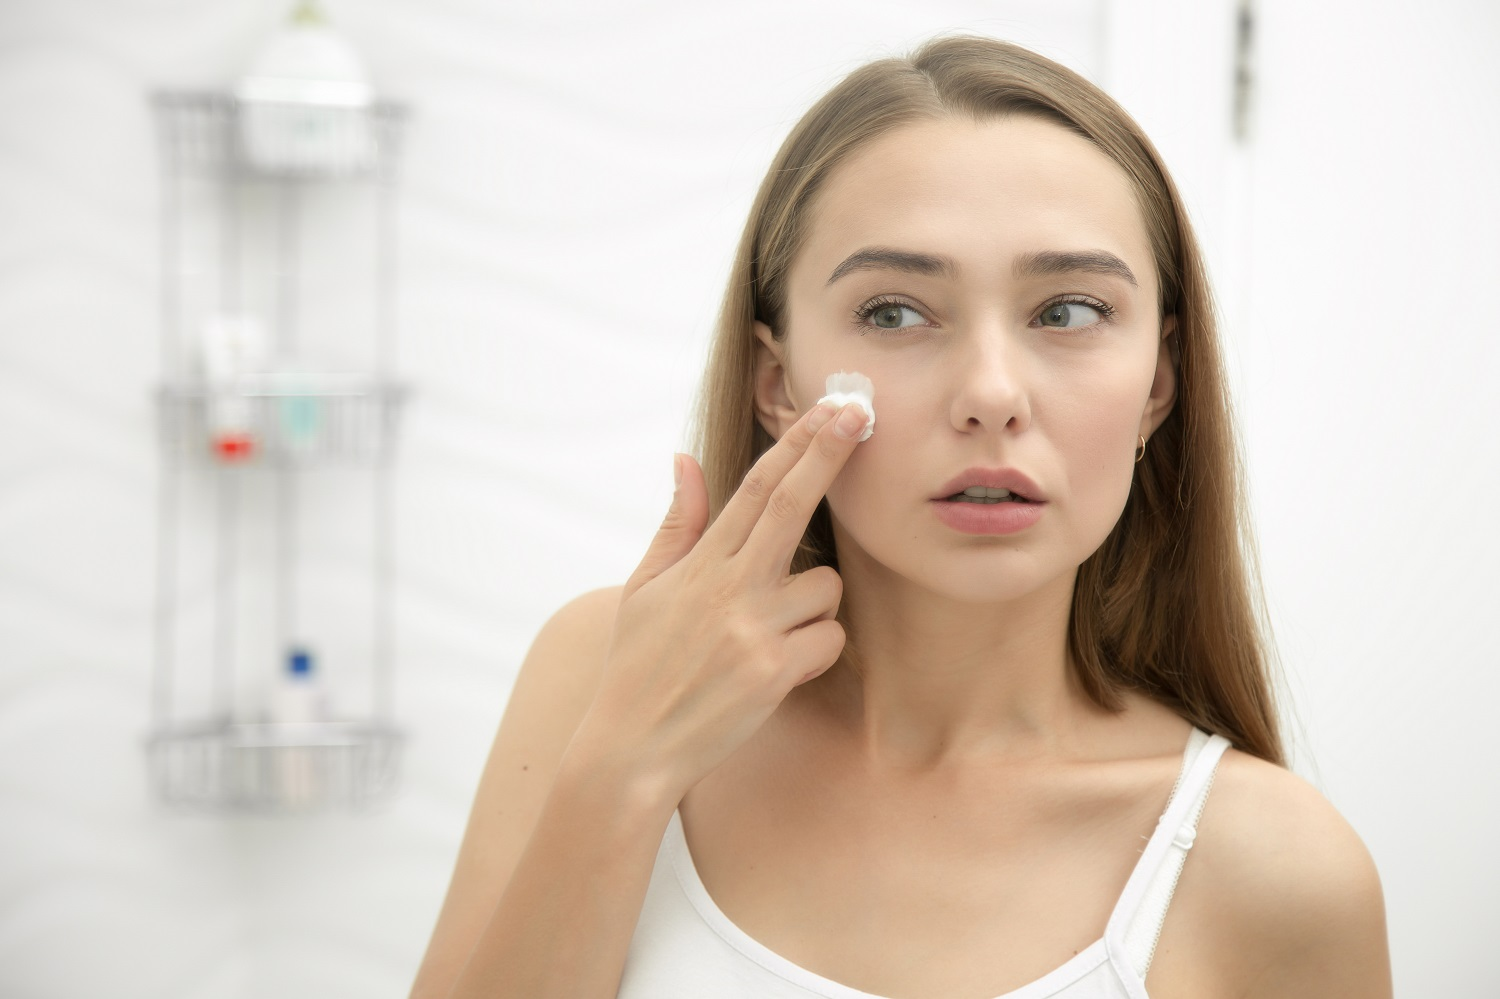 Young beautiful woman applying cream to her face and looking worried at the mirror at home bathroom. Beauty, skin care concept, lifestyle